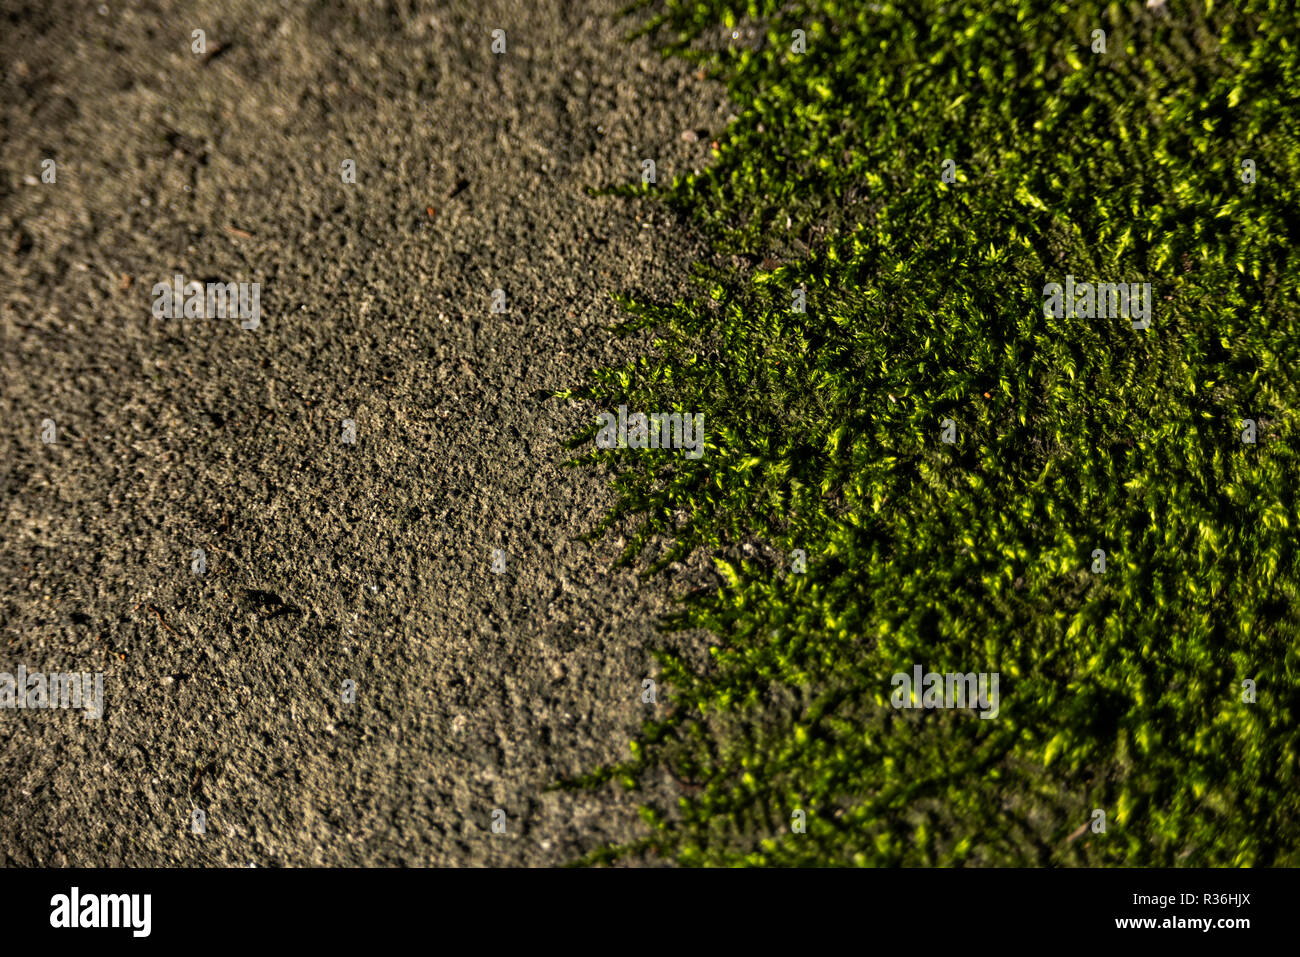 spontaneous growth of moss on concrete - Stock Image